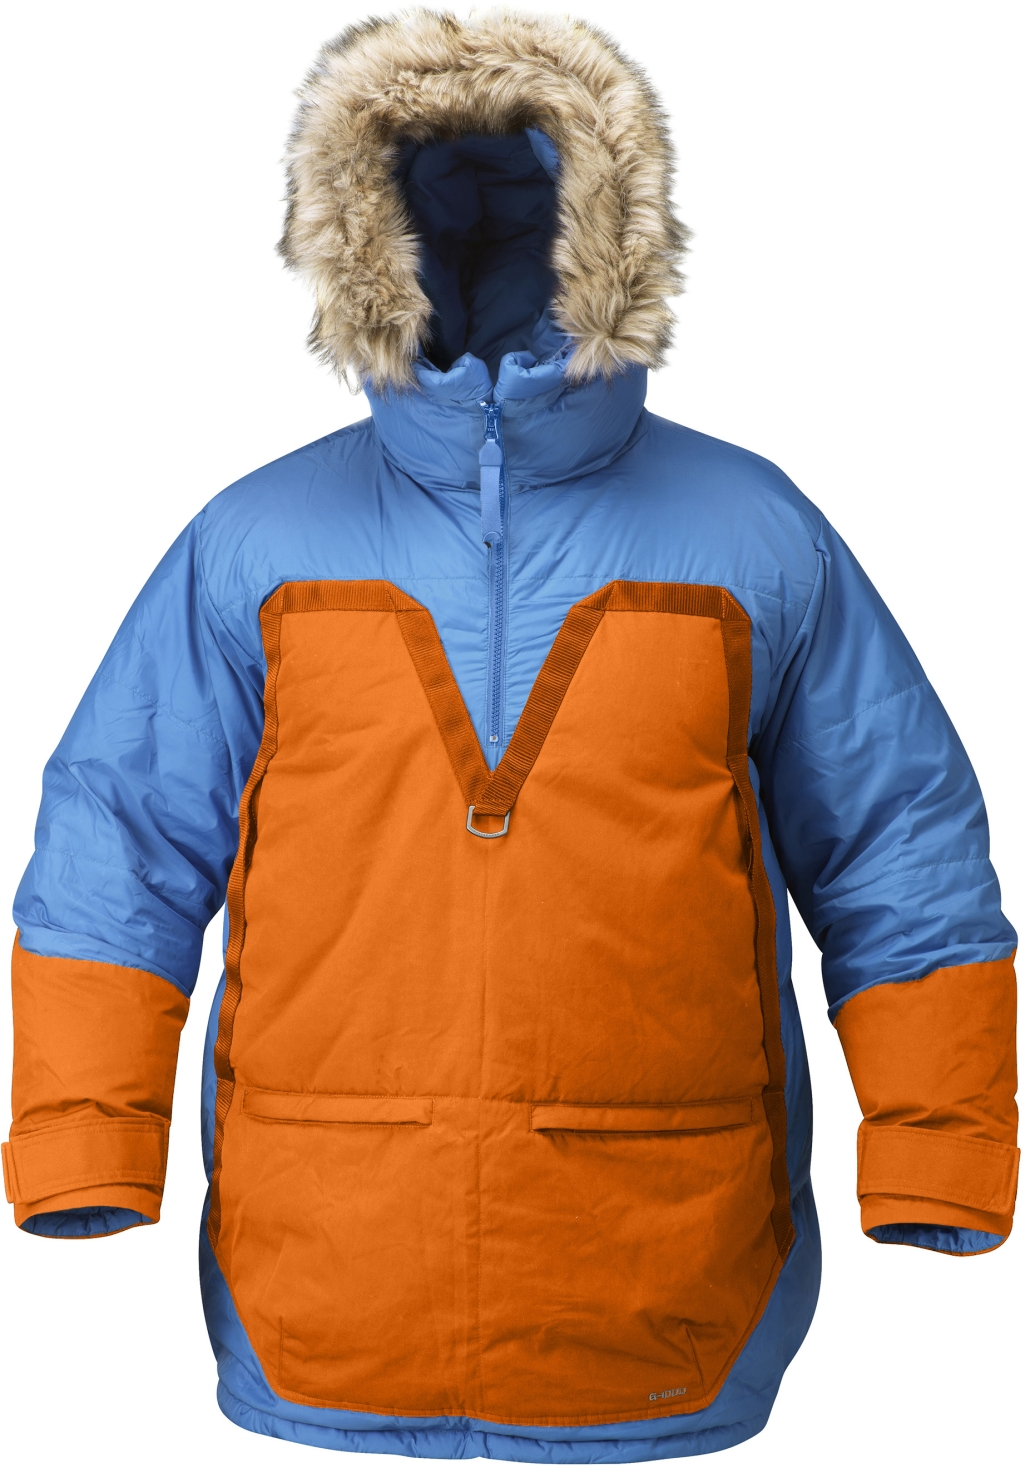 FjallRaven Fjallraven Polar Parka UN Blue-Burnt Orange-30